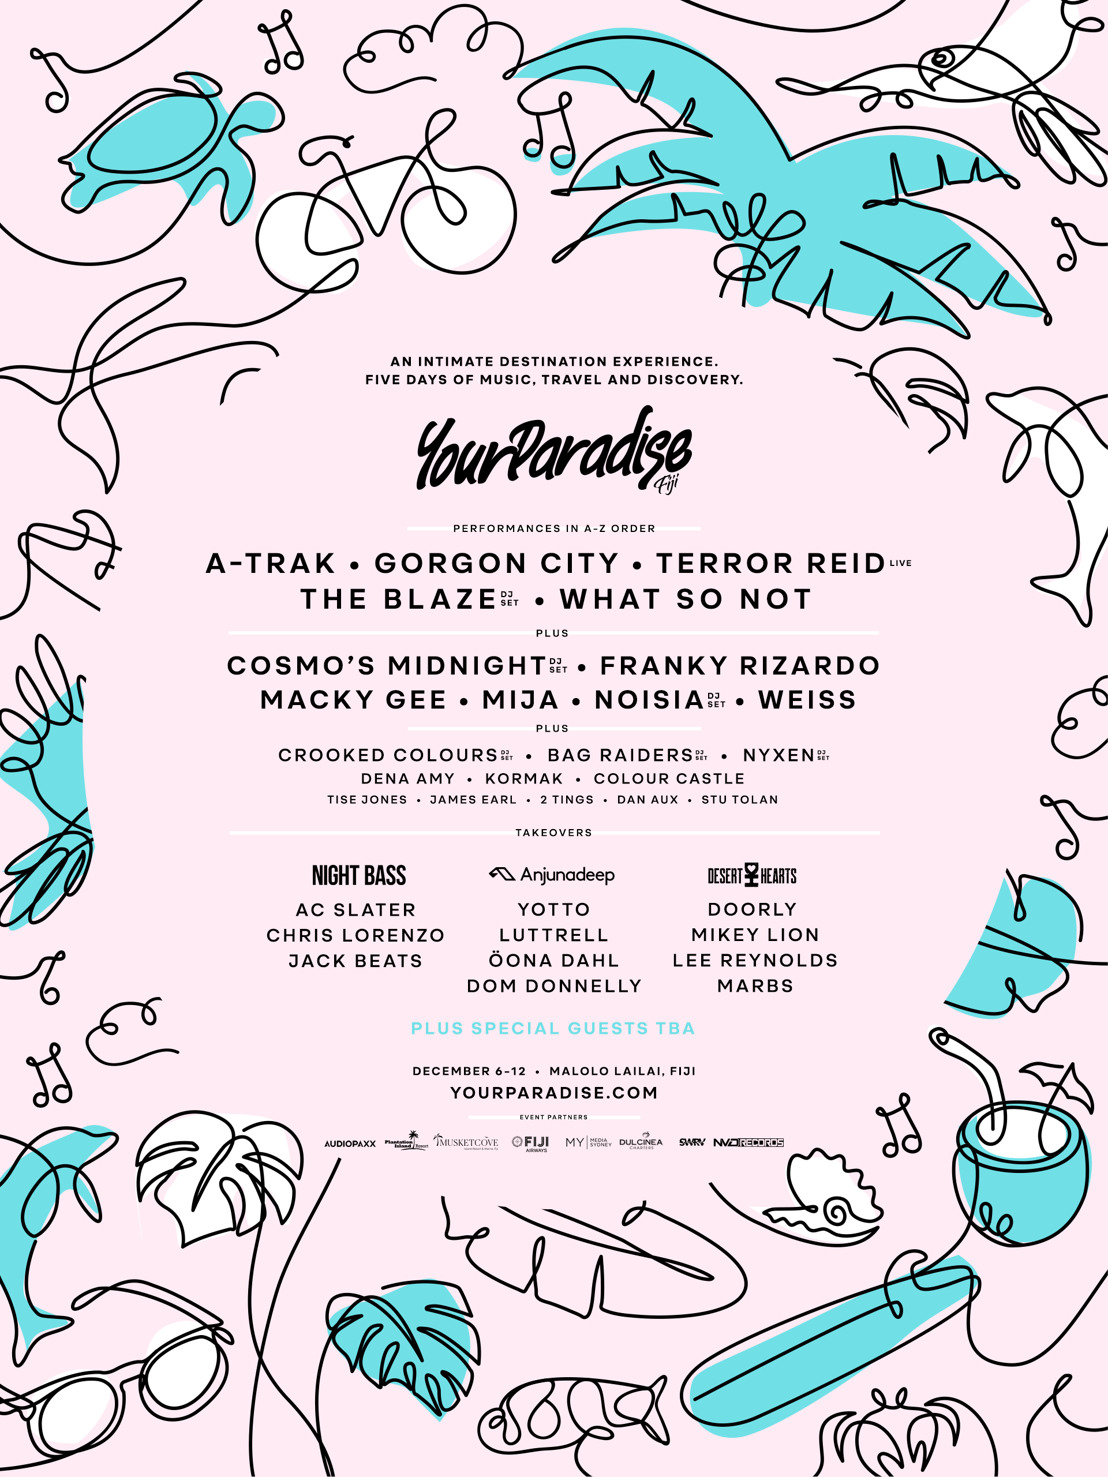 Your Paradise Fiji Releases Lineup for December 6-12th 2019 Event